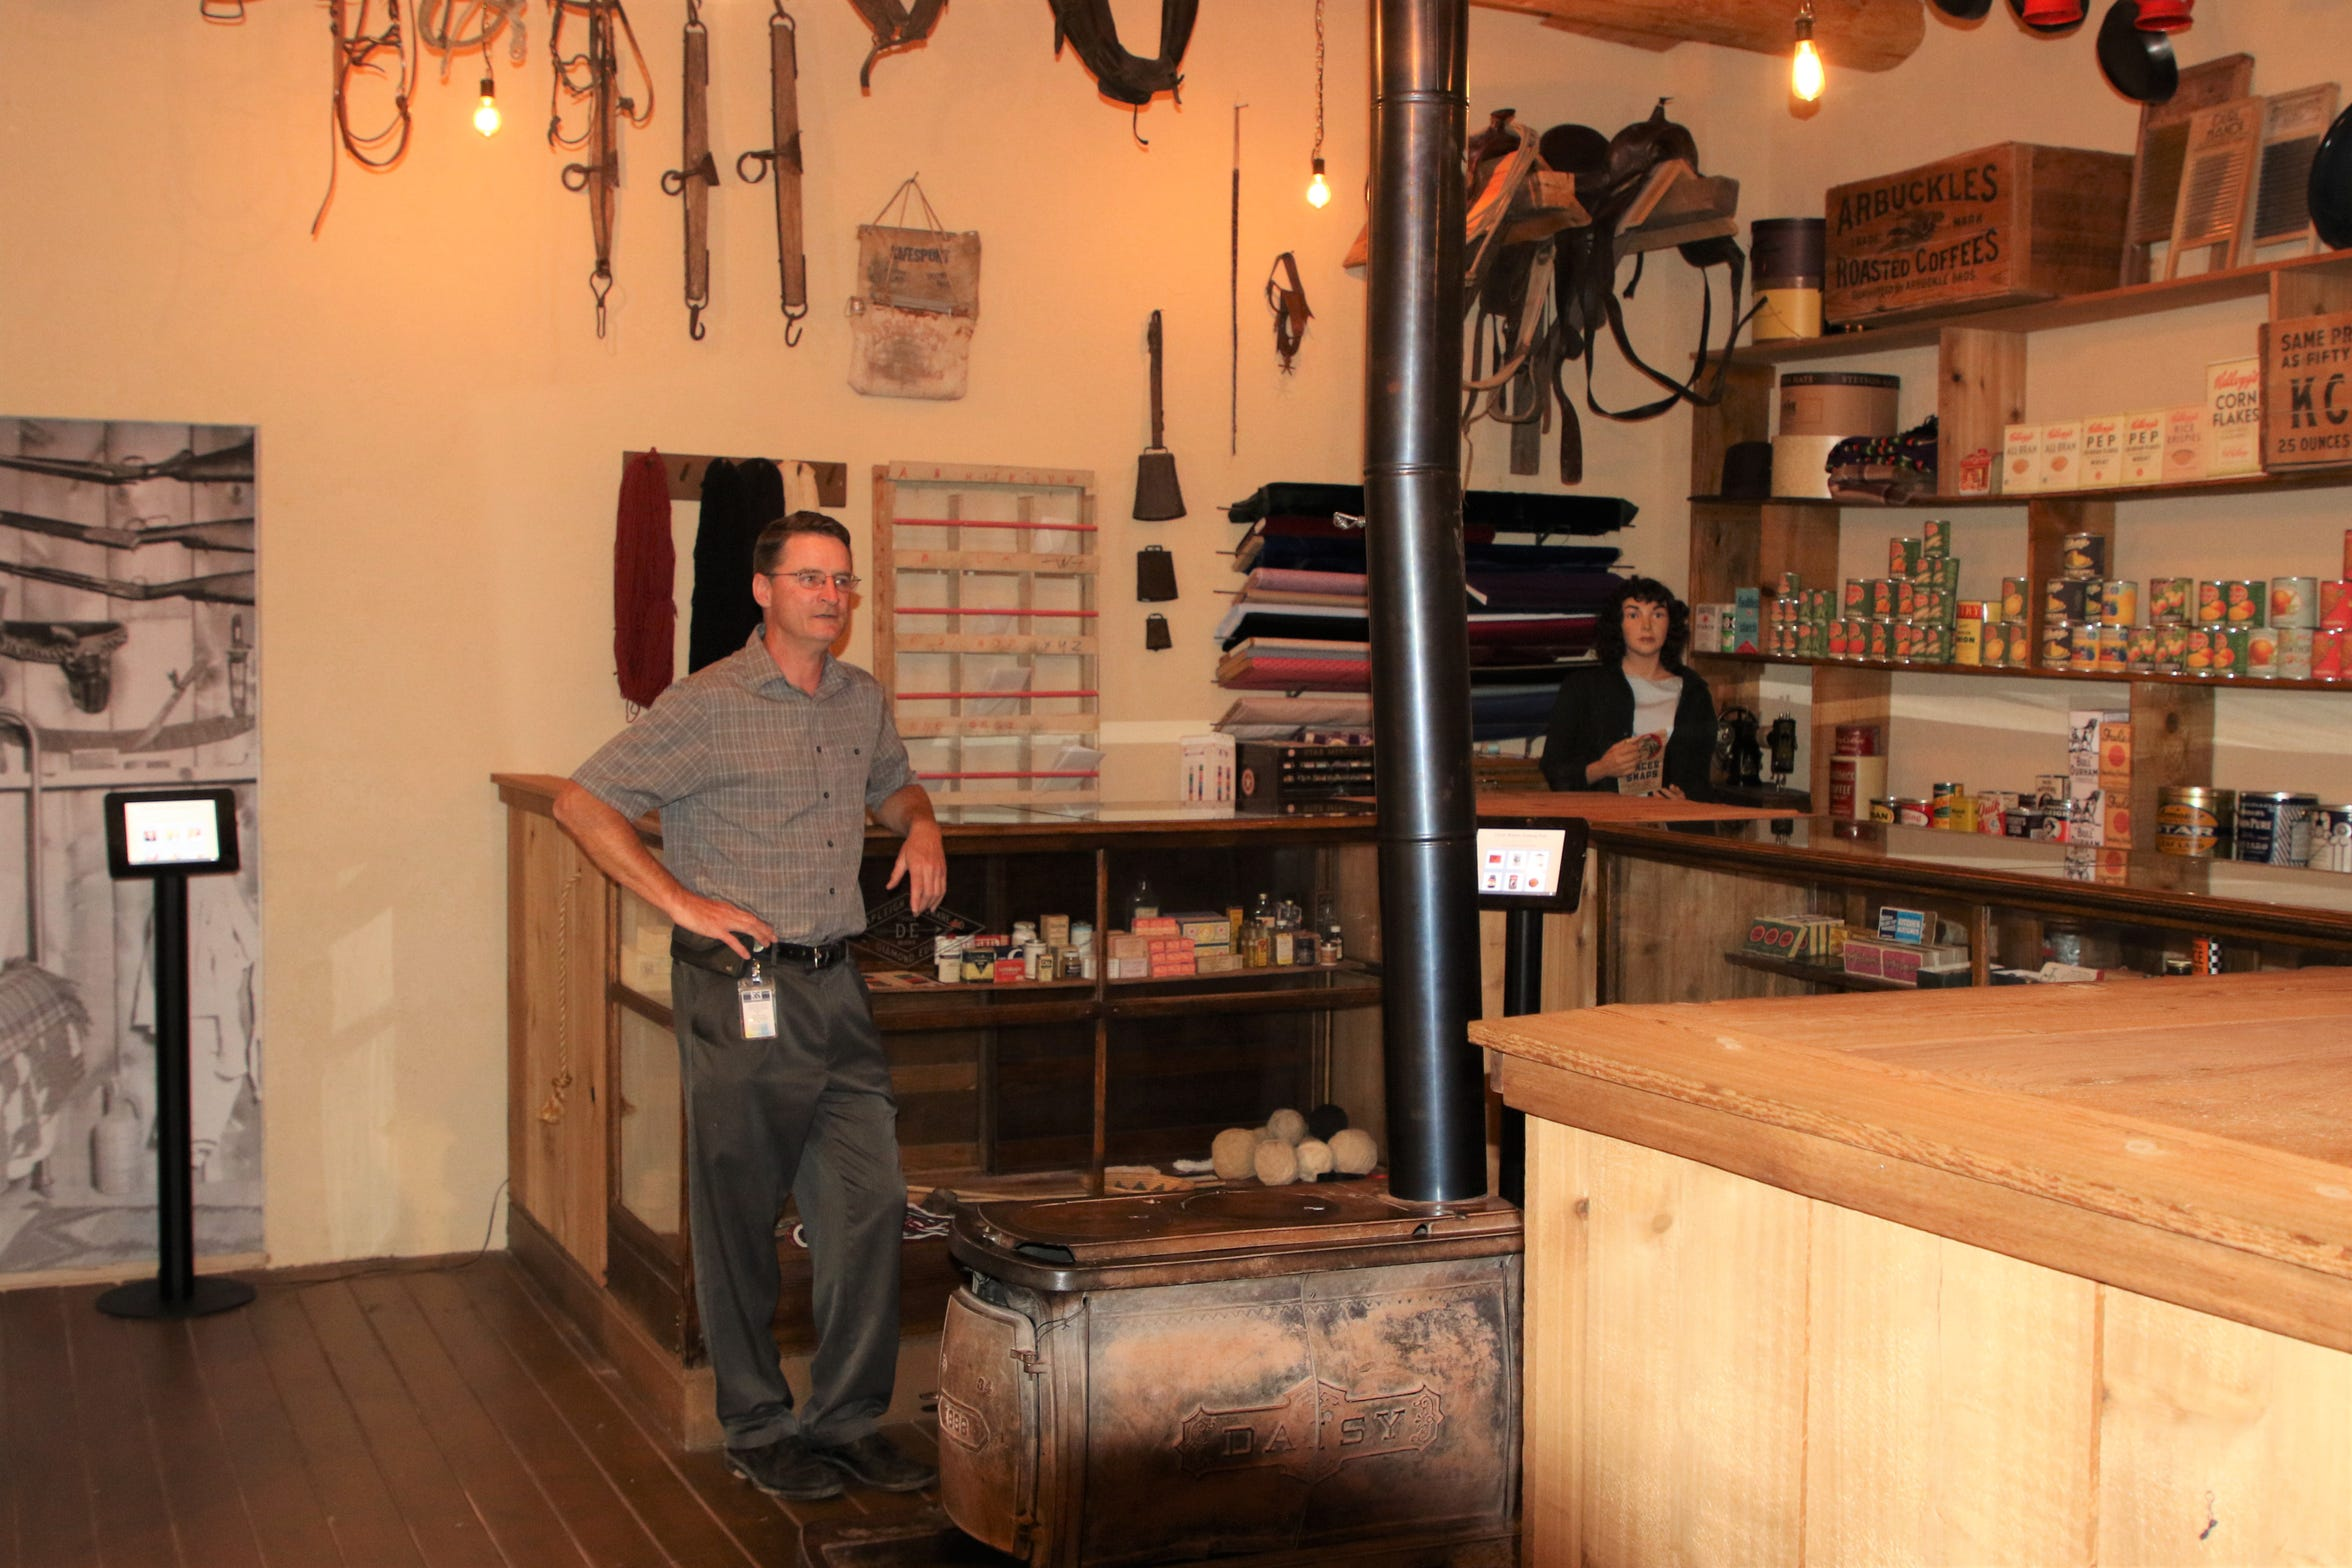 Farmington Museum director Bart Wilsey stands at the counter of a replica trading post that is a popular exhibit at his museum.